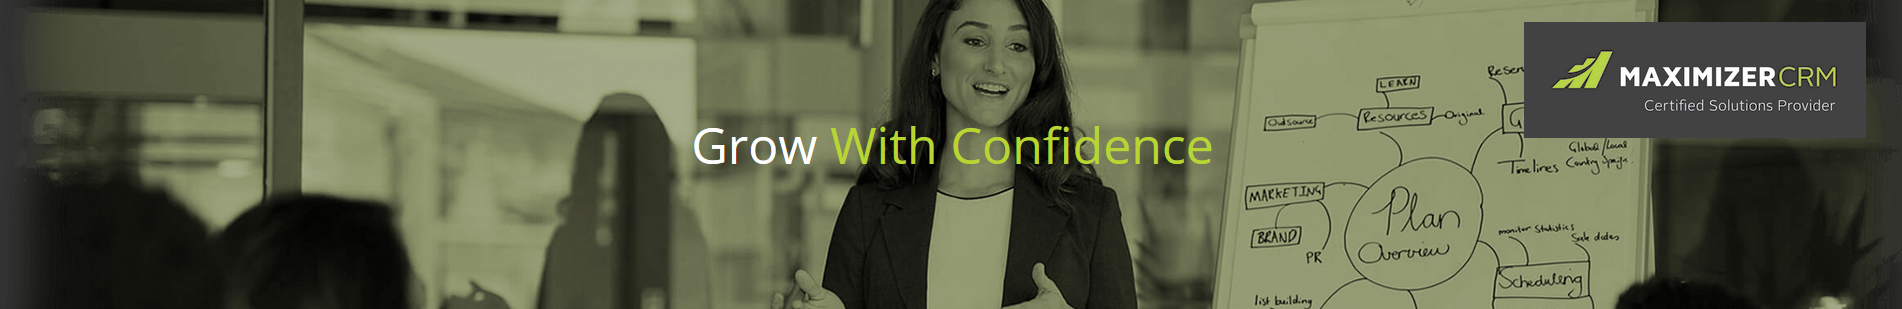 Grow with confidence banner